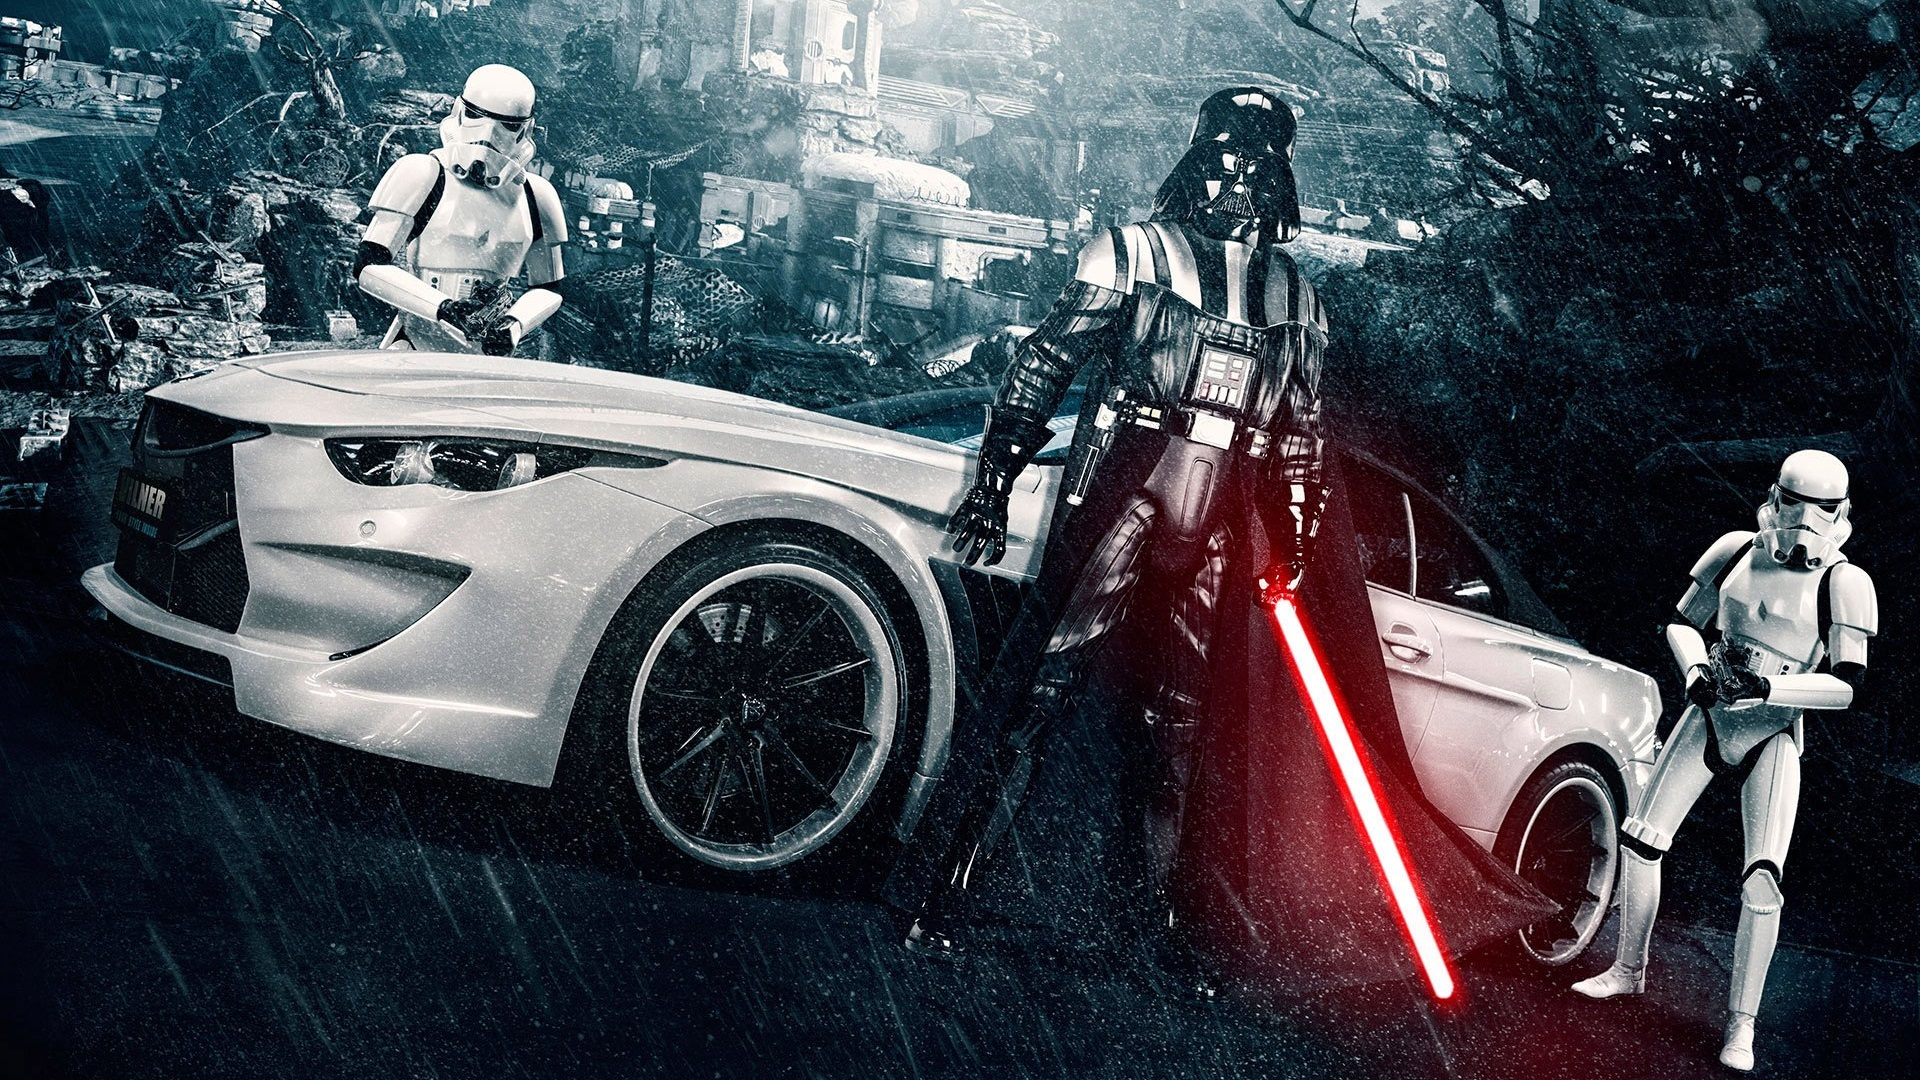 darth-vader-stormtrooper-heavy-rain-mitsubishi-wallpaper-hd